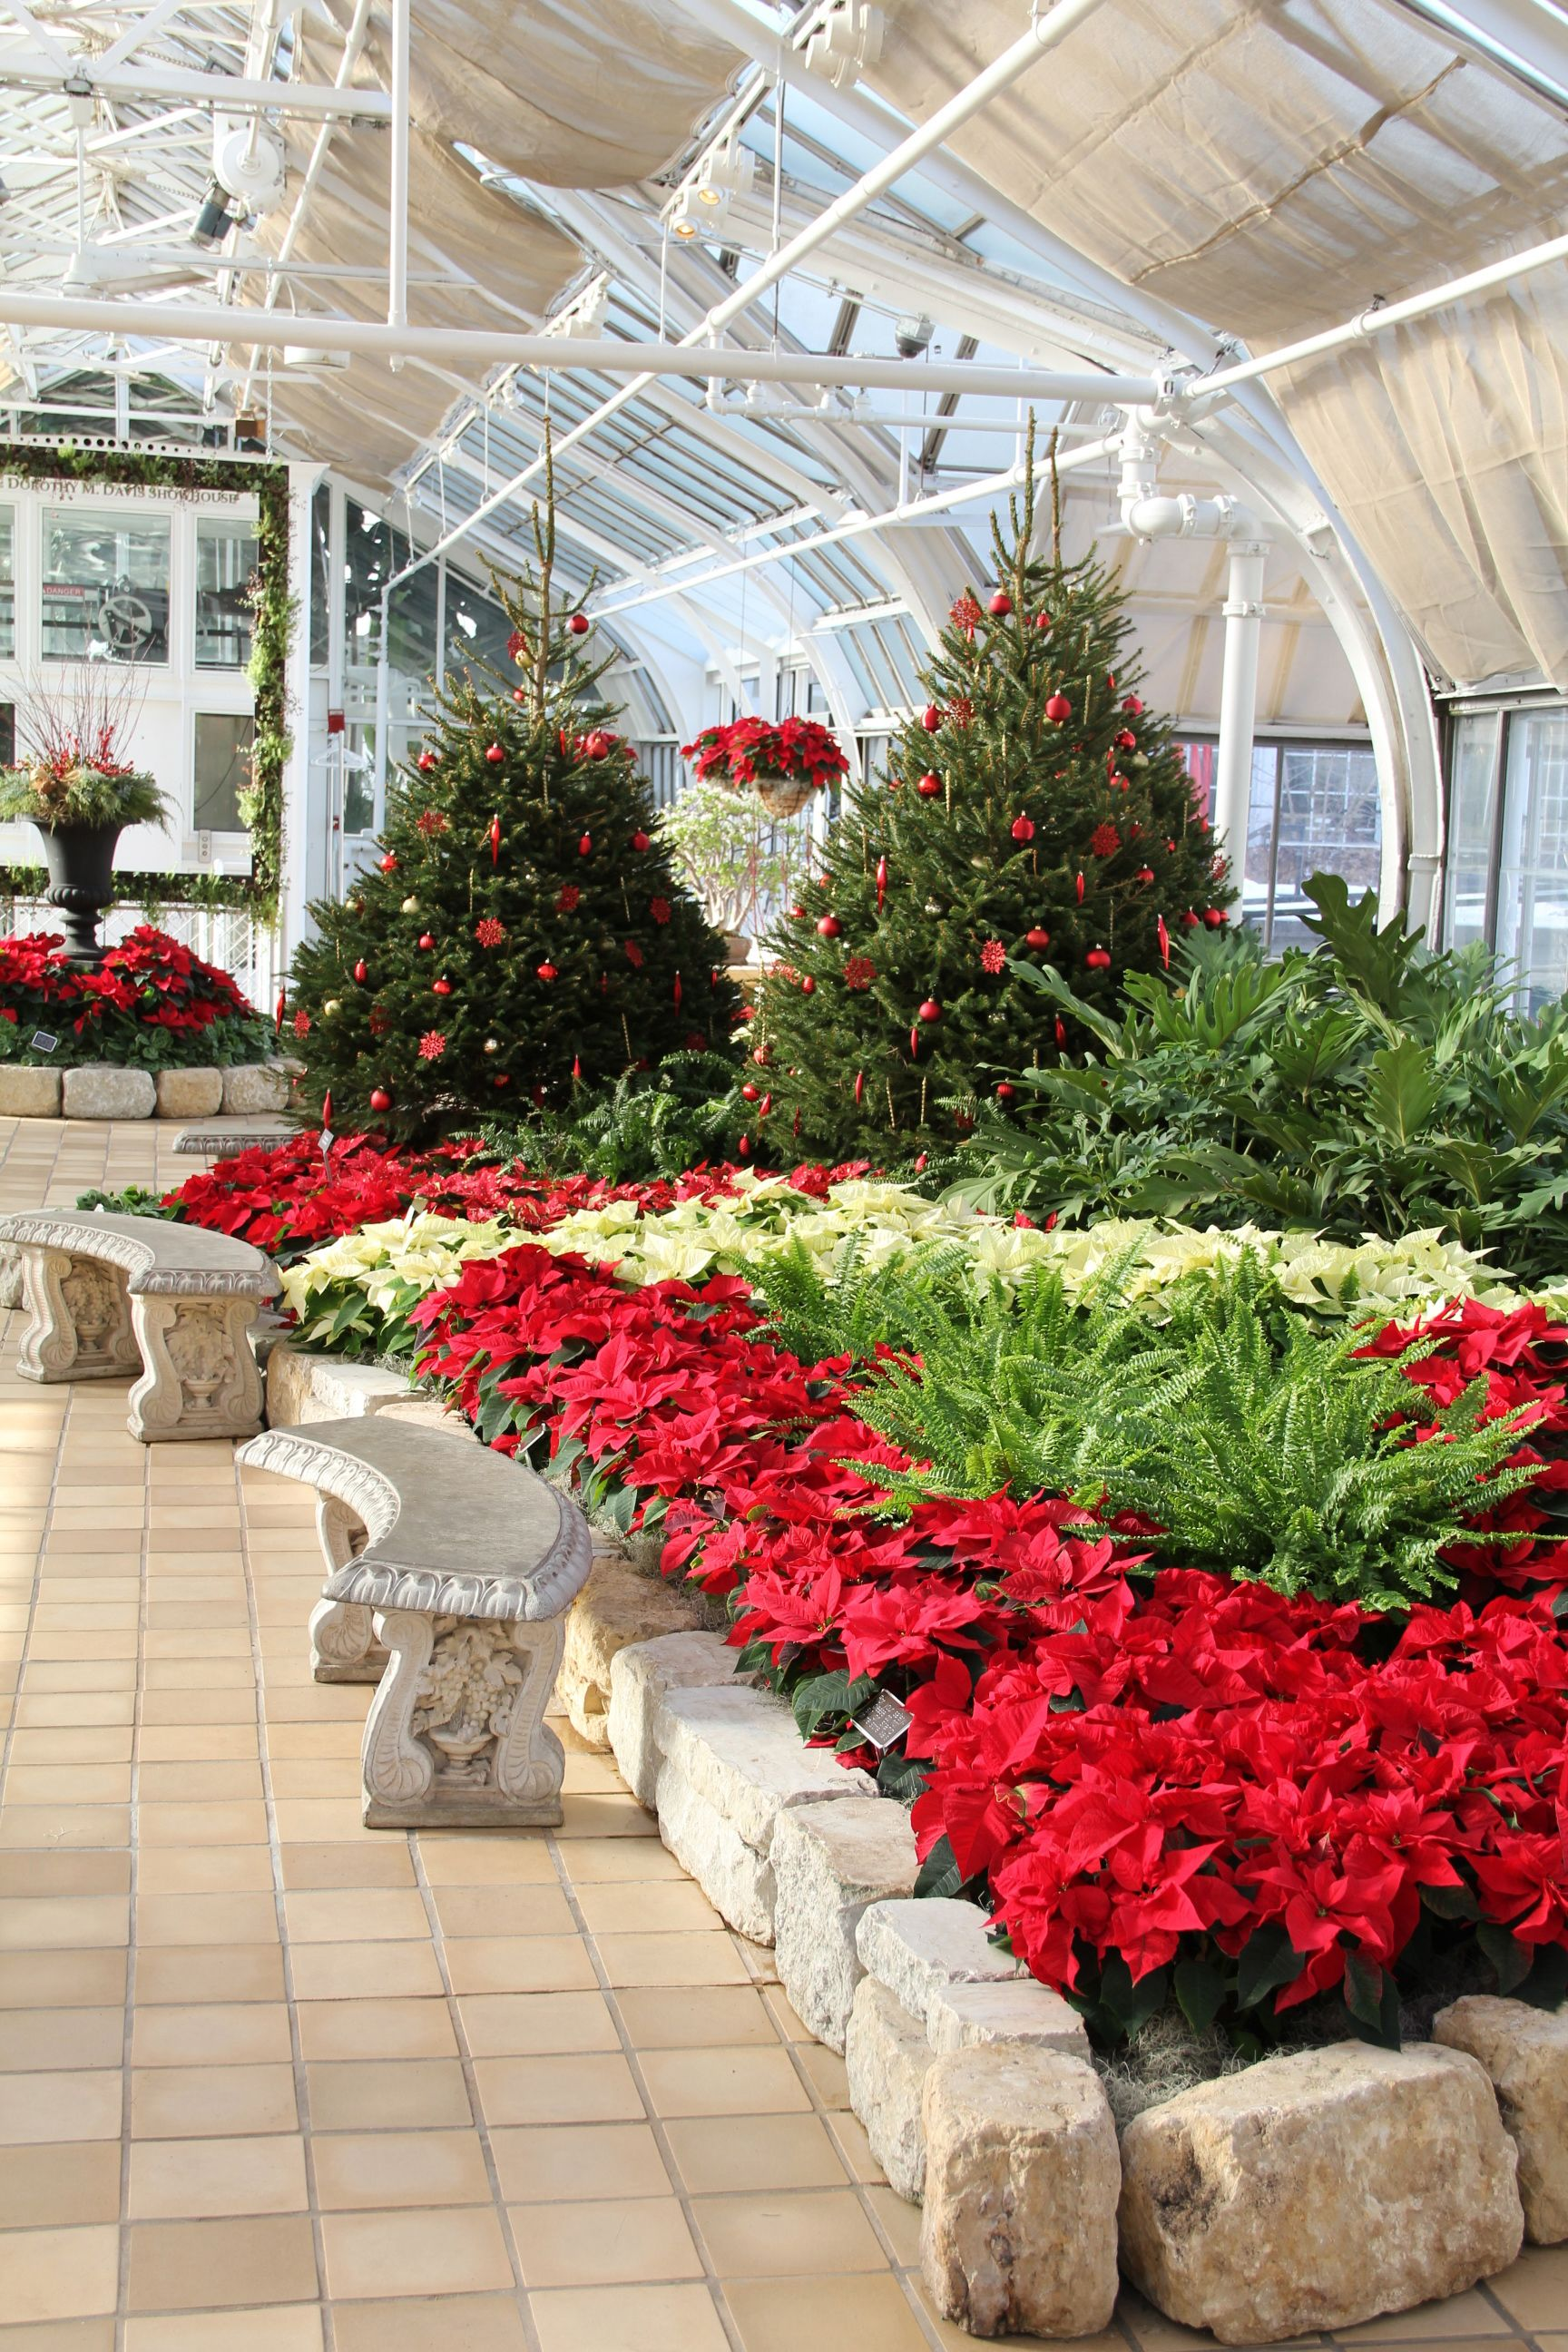 Holiday Displays Of Poinsettias And Evergreens Merry Bright At